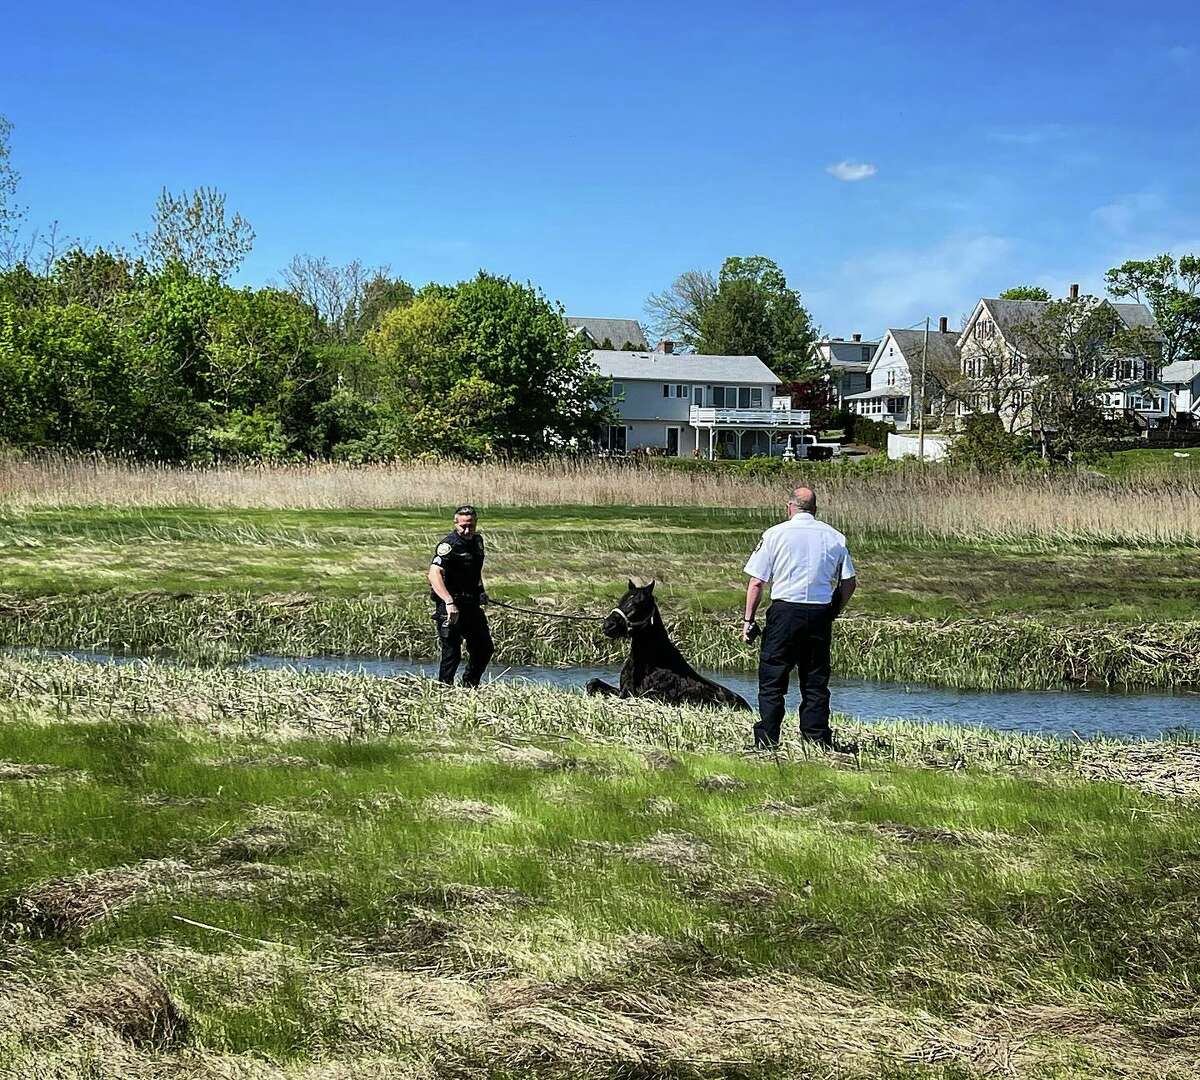 First responders, animal control officers and citizens helped free a horse stuck in the muddy, marsh area of the Branford River in Branford May 11, 2021.